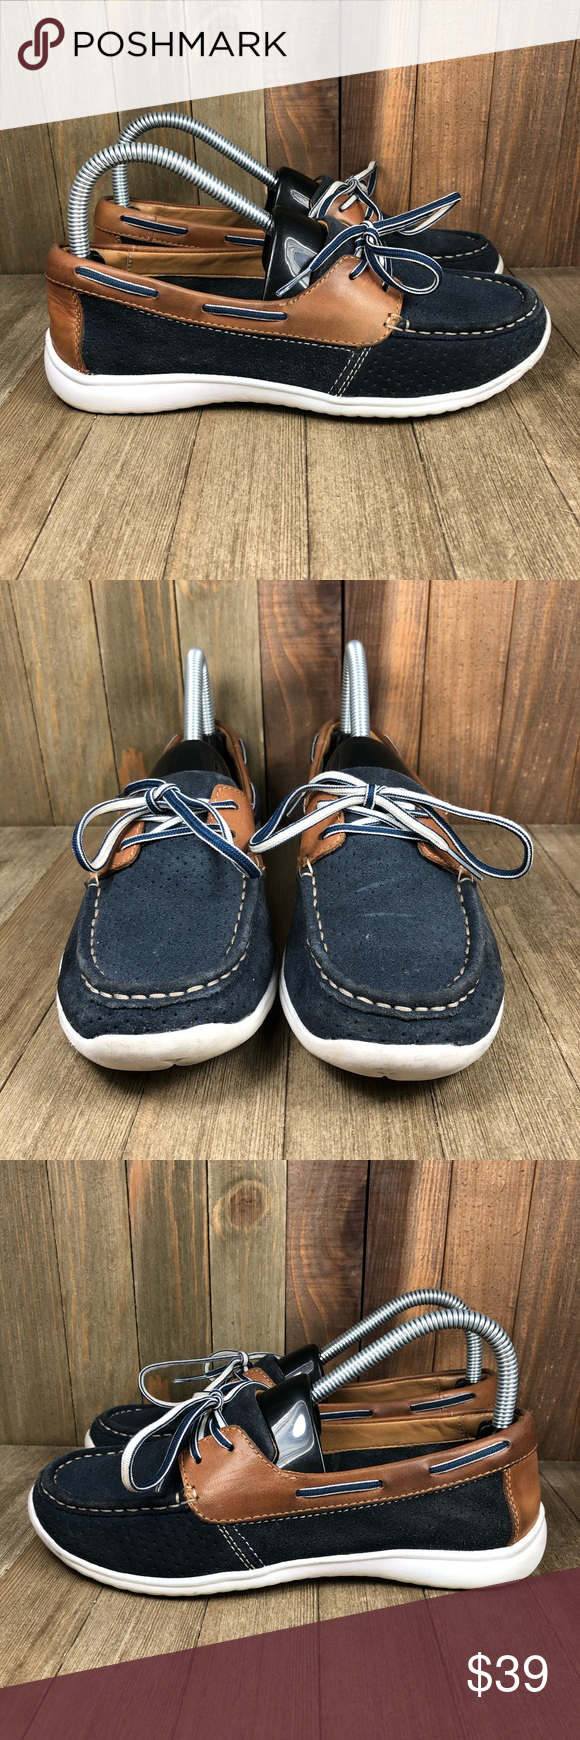 Clarks Arbor Opal Boat Shoes Womens Size 7.5 Gently used. Smoke free. No box. I always carefully package and ship immediately. Reach out with any questions!  Size: Womens 7.5  Color: Blue/Brown  (My inventory: C0502)  Pair in photos is the exact pair you are purchasing  Make sure to follow! I post a ton of shoes and offer bundle pricing. Clarks Shoes Flats & Loafers